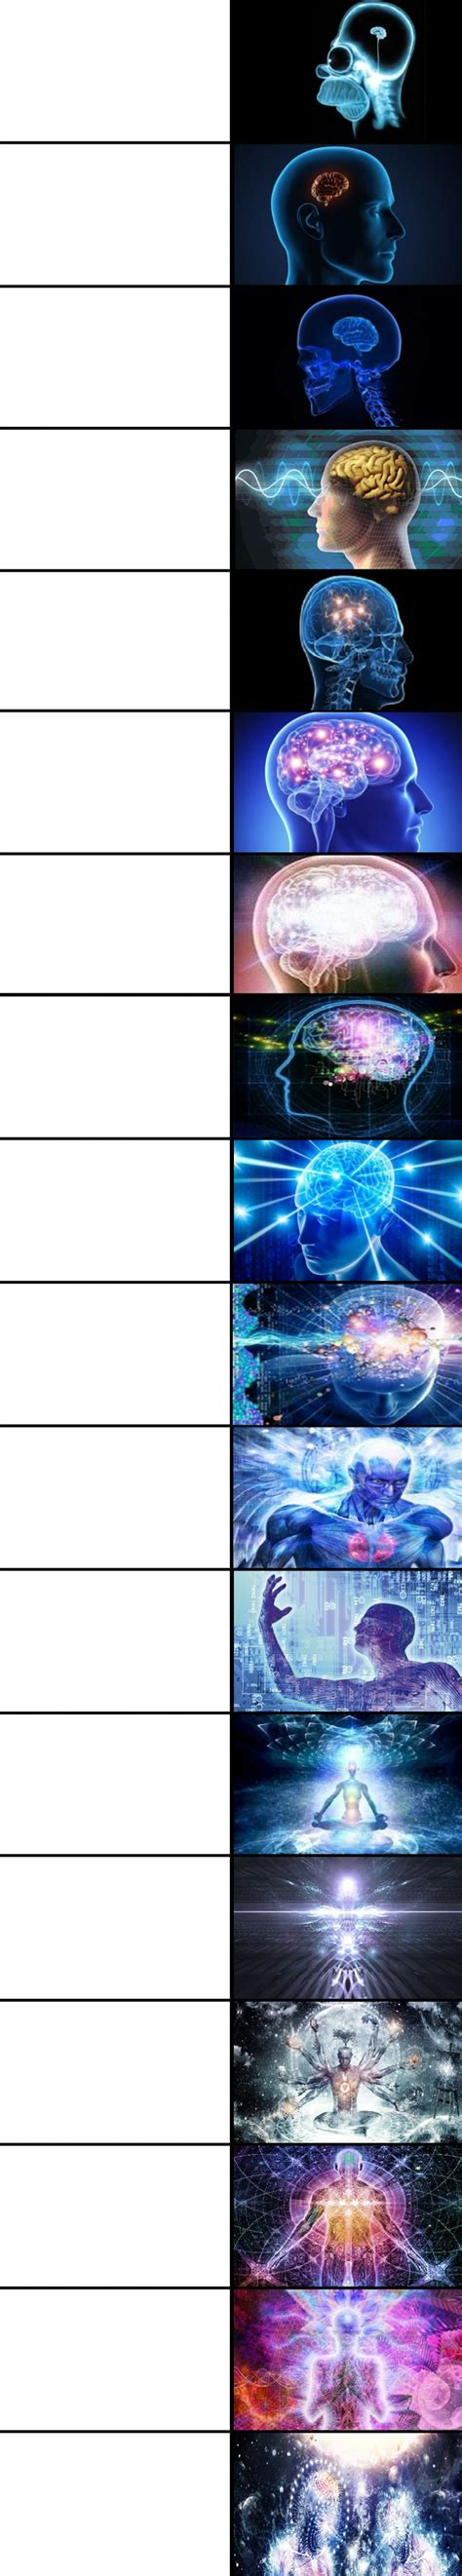 meme template search imgflip